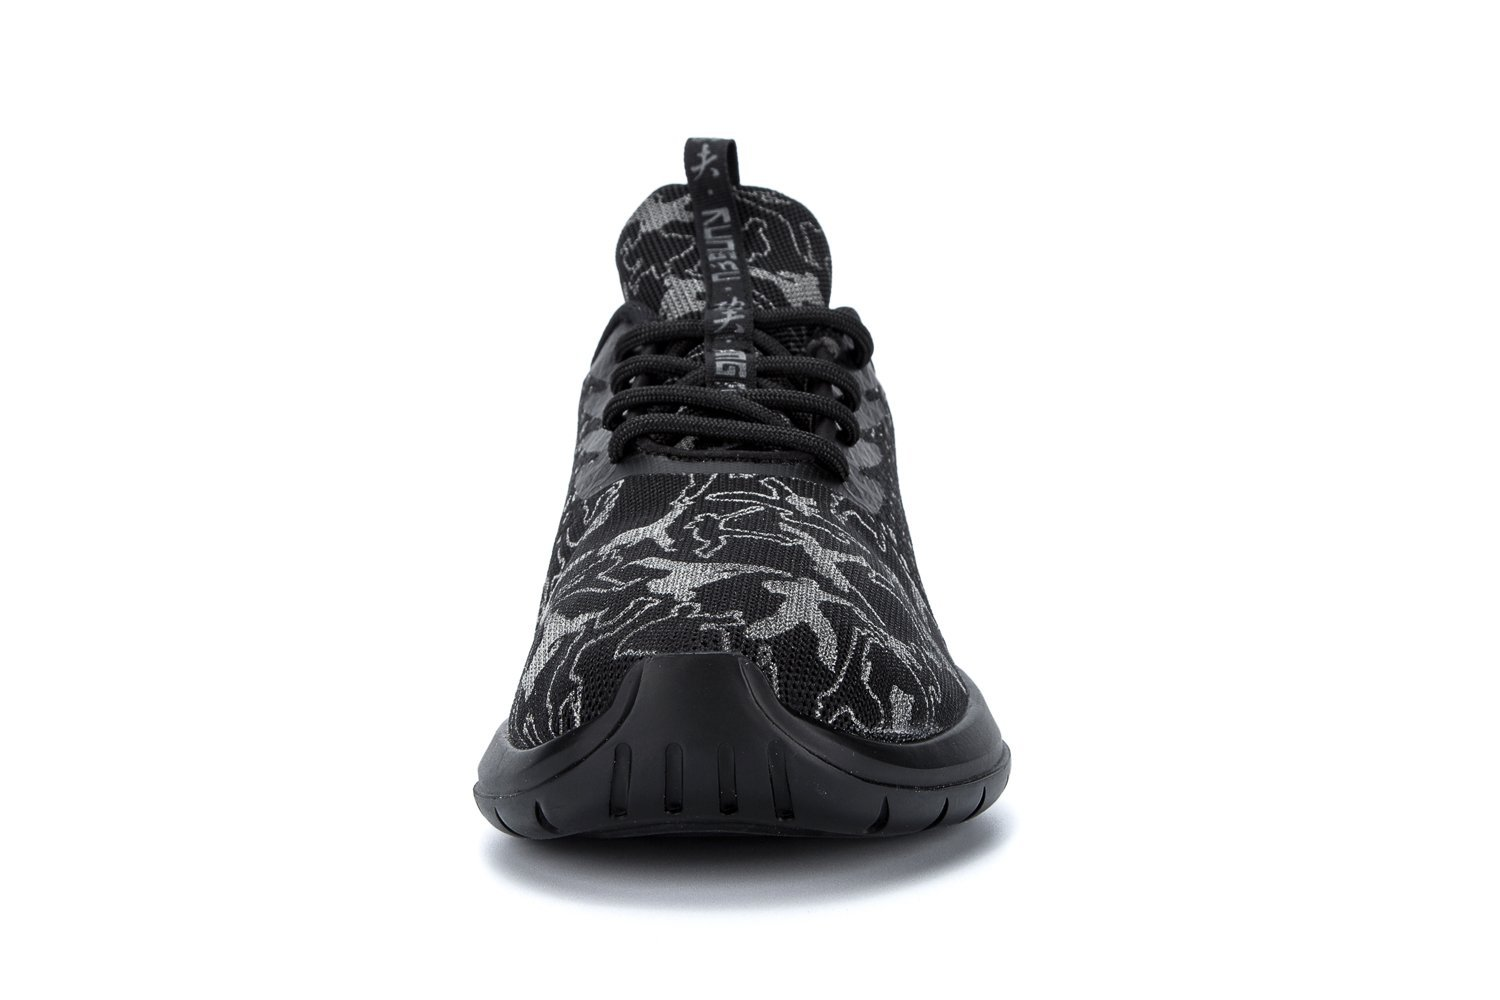 Fashion sneaker Ninja glow in dark(Black/White/Red/Grey)